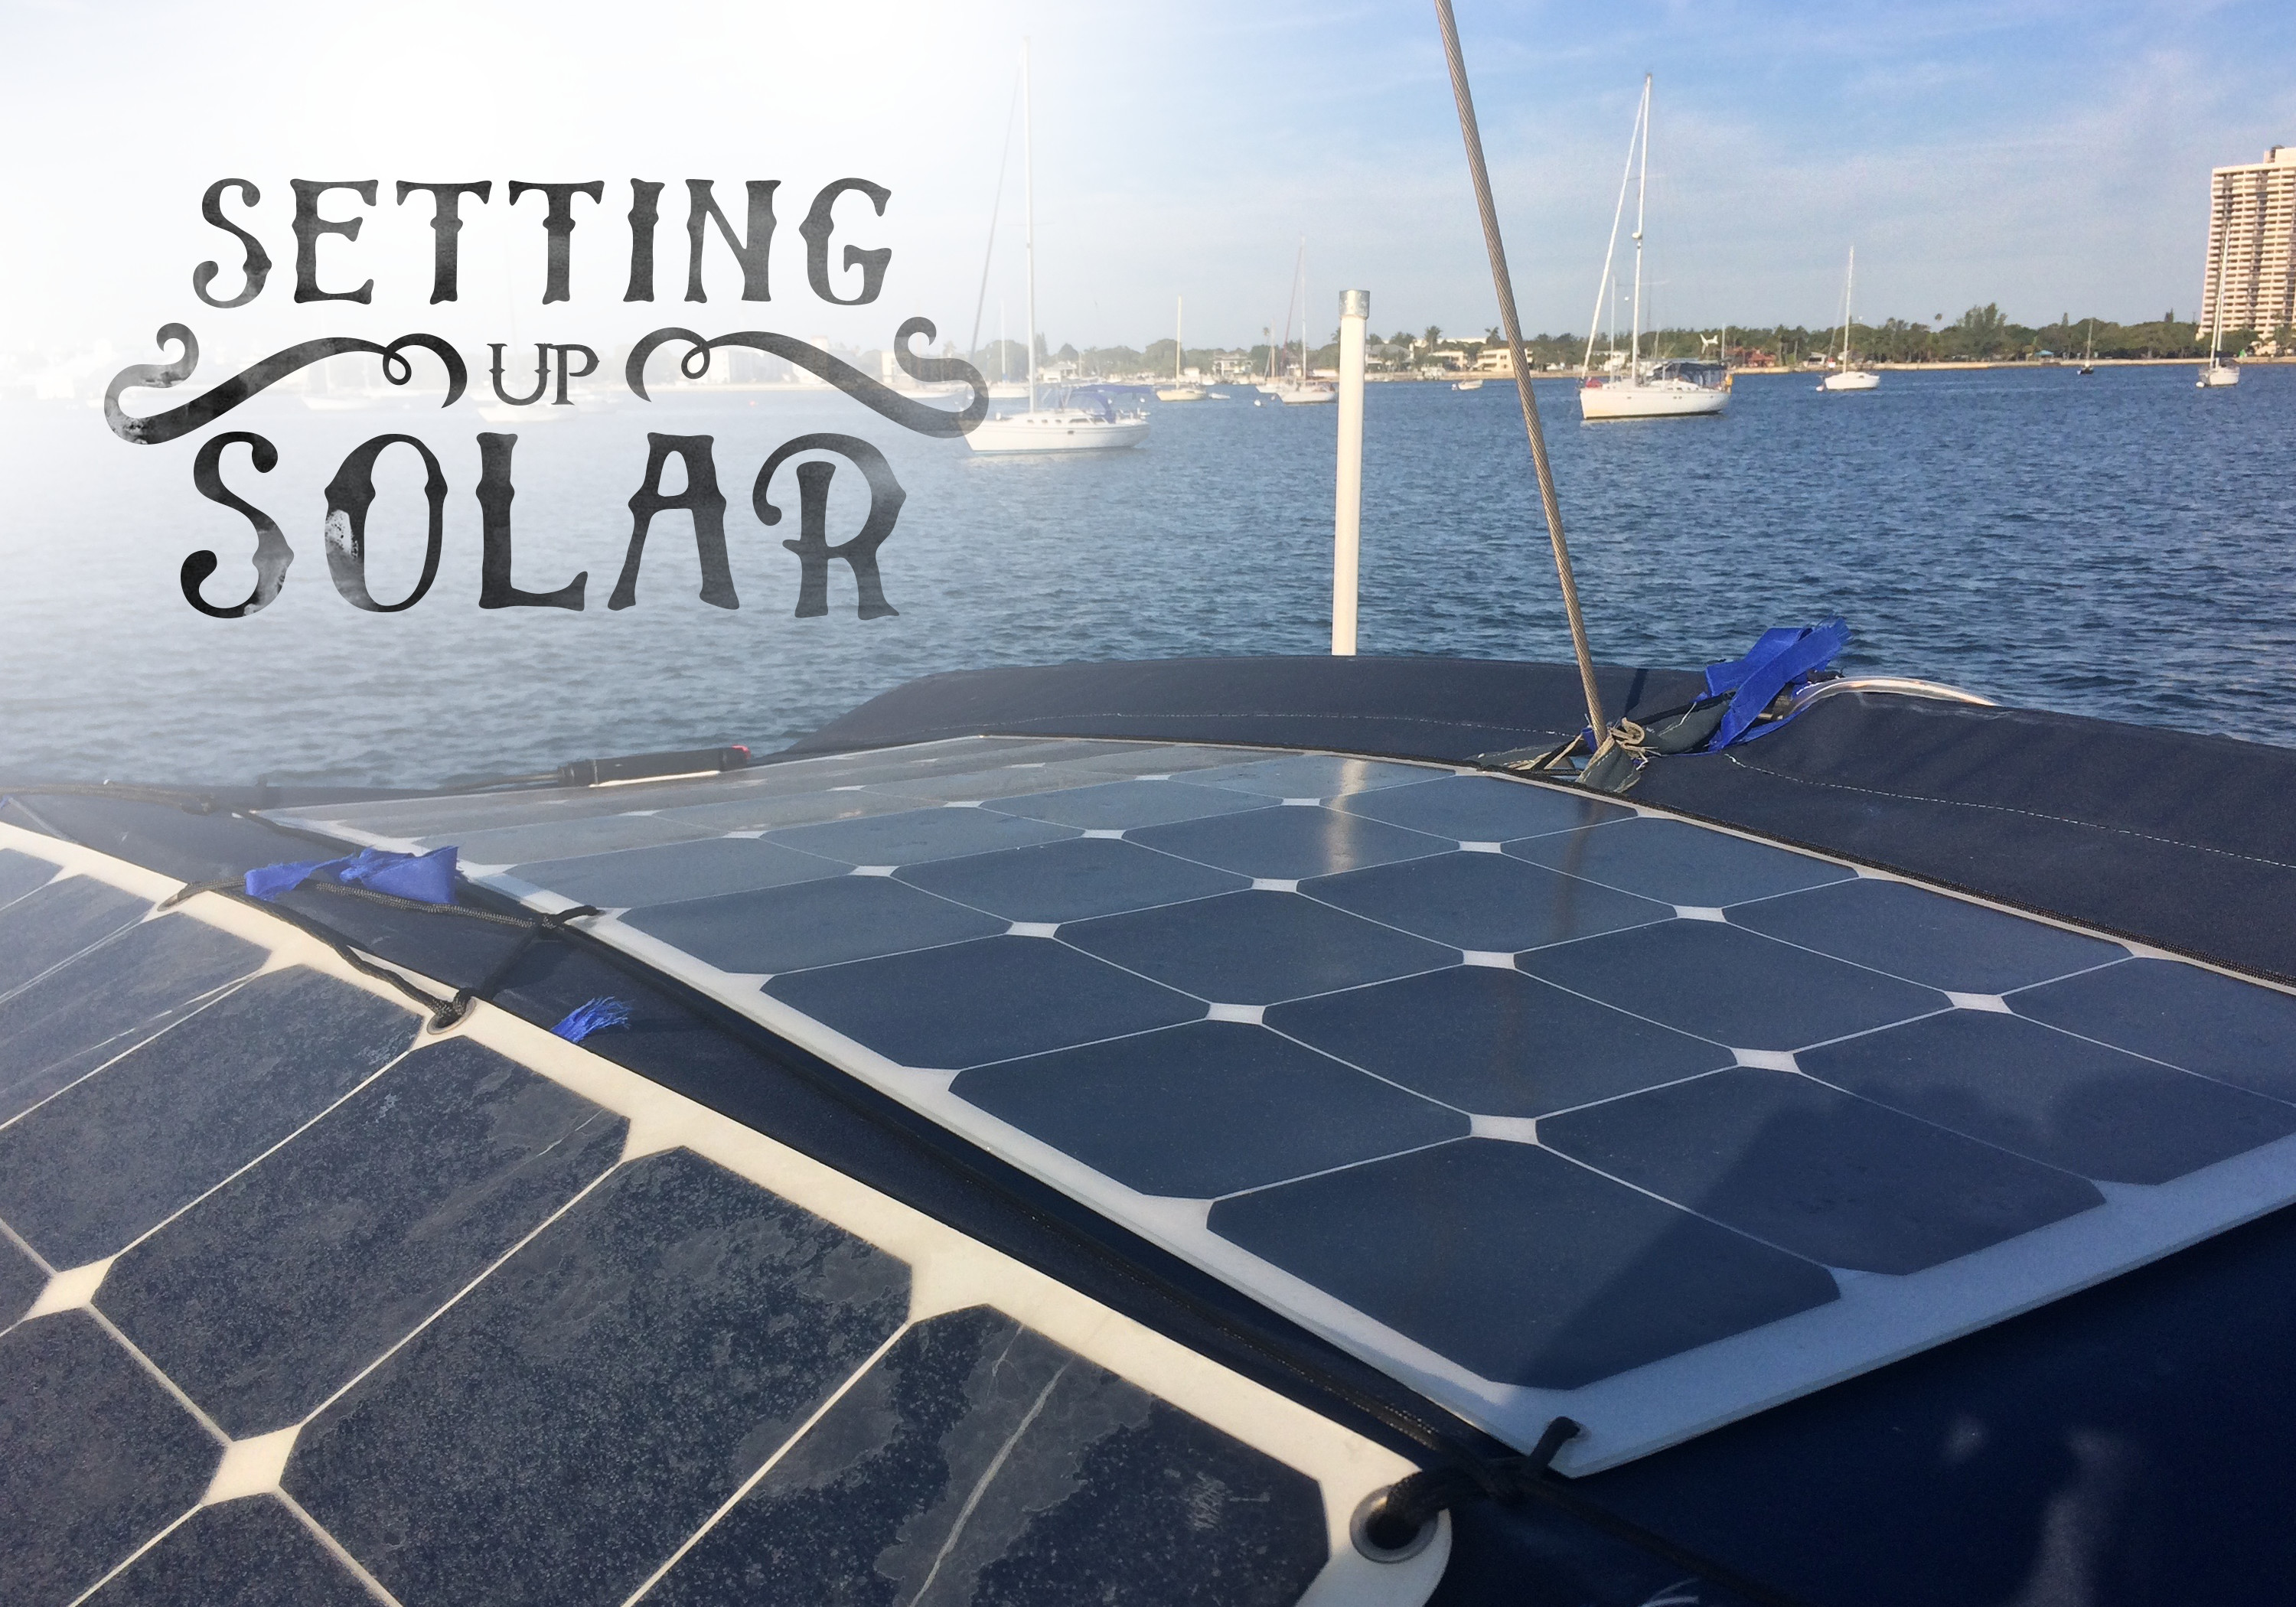 Astounding Setting Up Solar Panels On Boat Rv Or Off The Grid Living Wiring Cloud Philuggs Outletorg